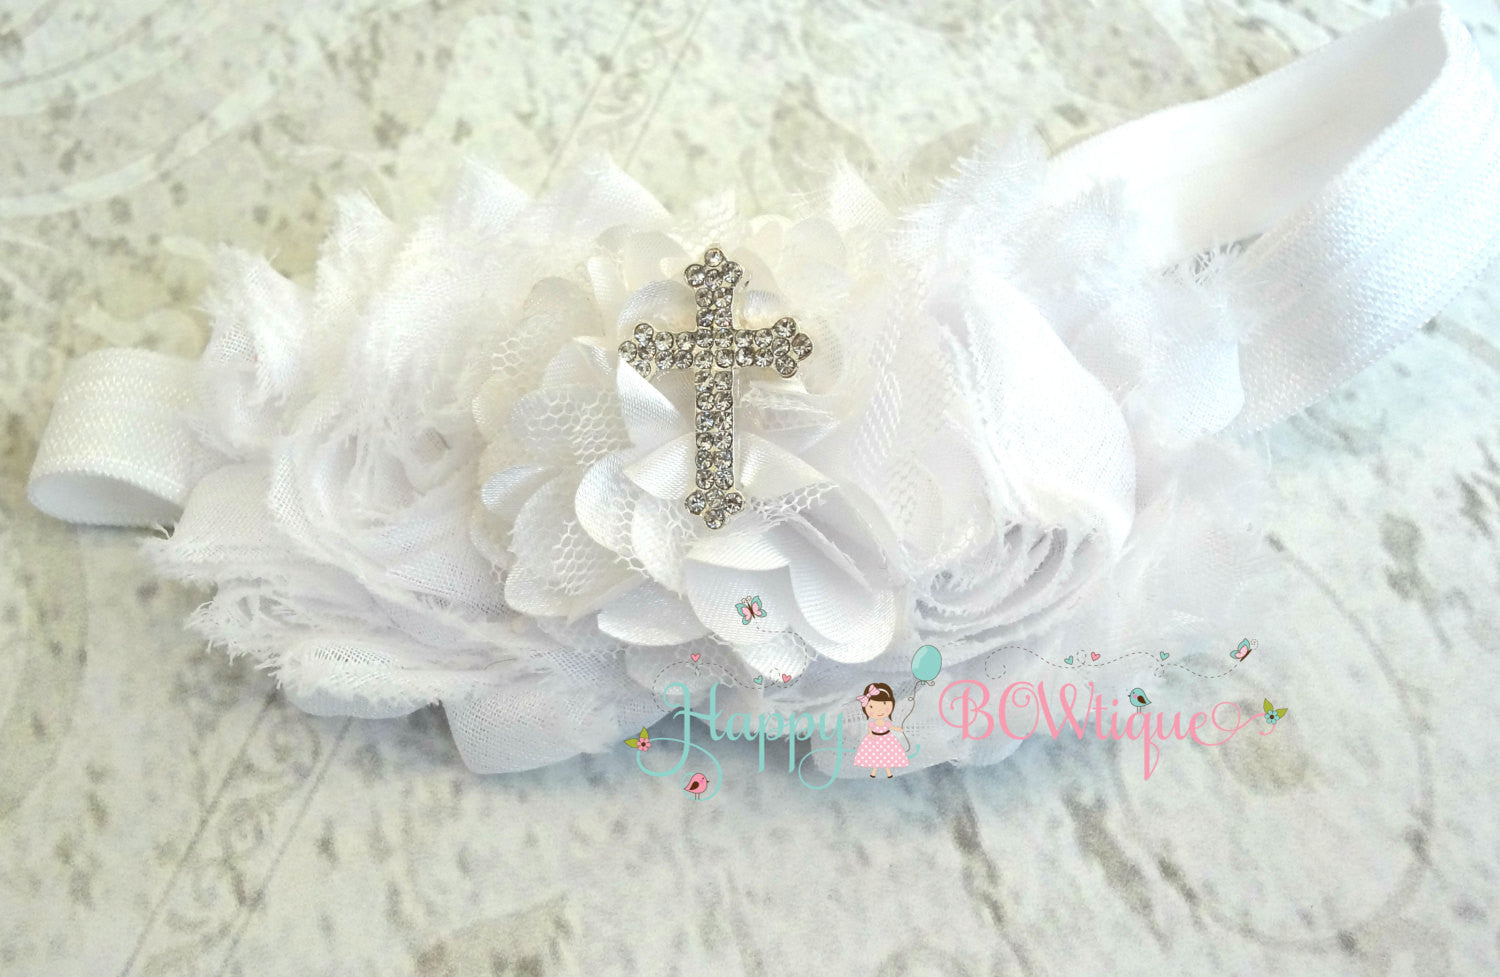 Trio White Cross Headband - Happy BOWtique - children's clothing, Baby Girl clothing